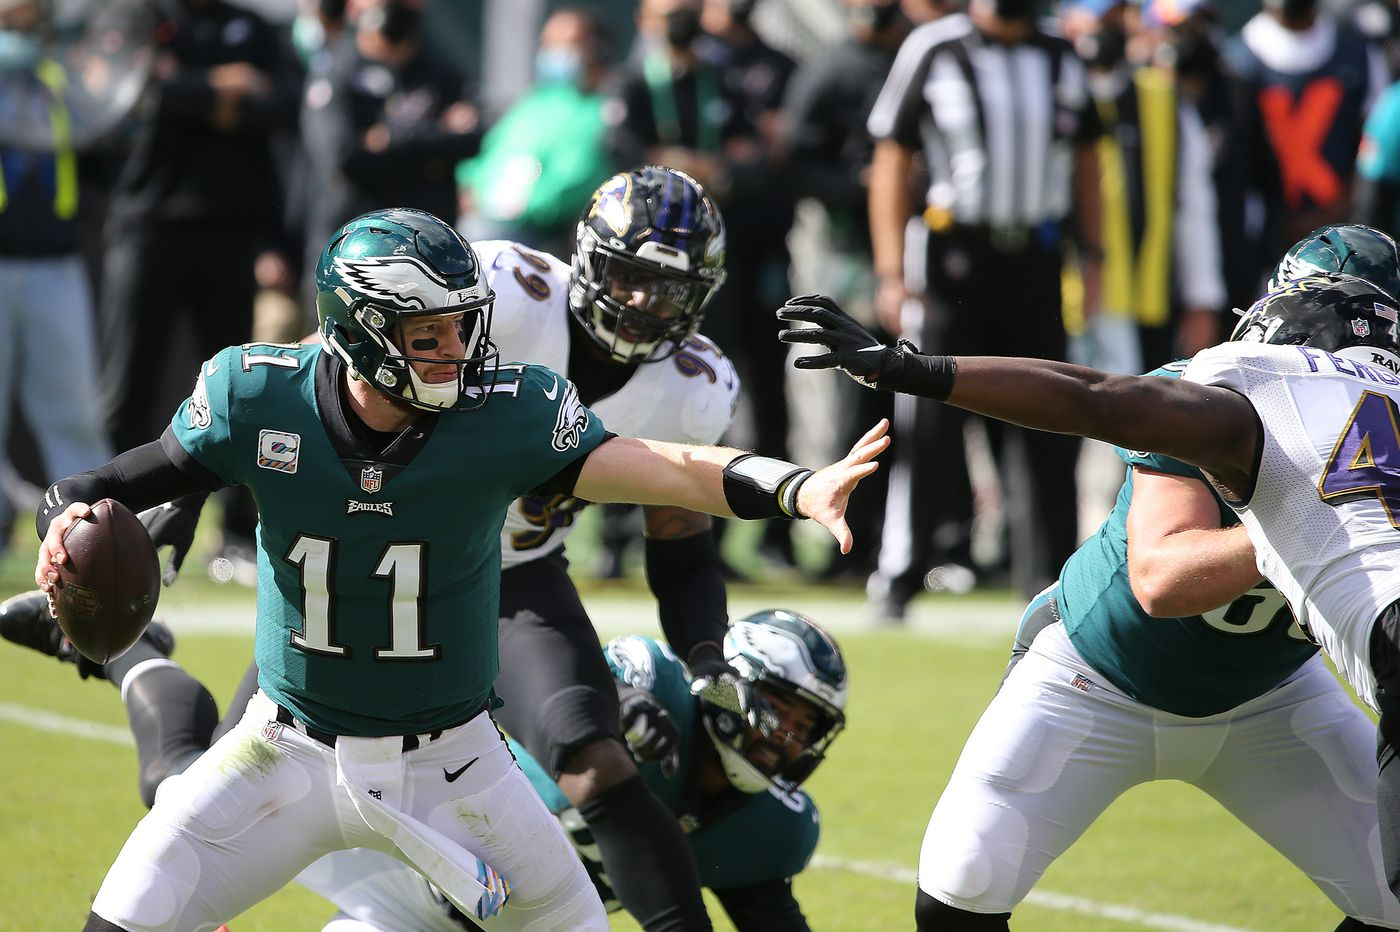 At the NFL trade deadline, the Eagles must protect Carson Wentz and target the offensive line | David Murphy